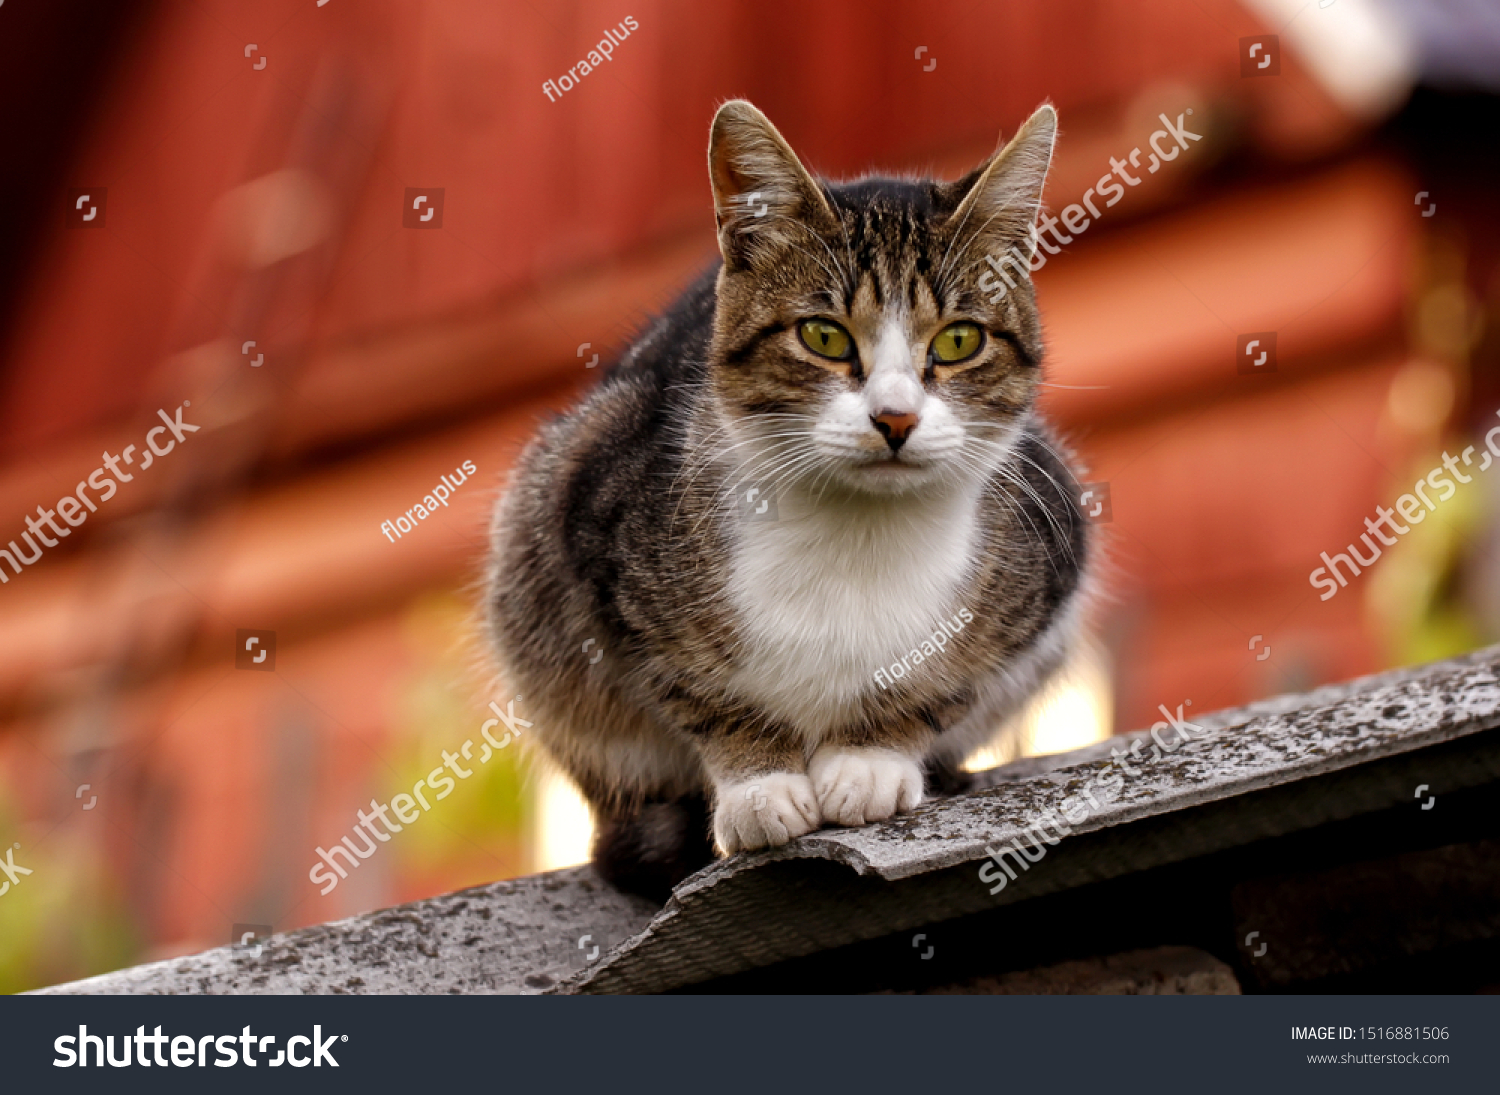 stock-photo-a-grey-striped-cat-with-gree